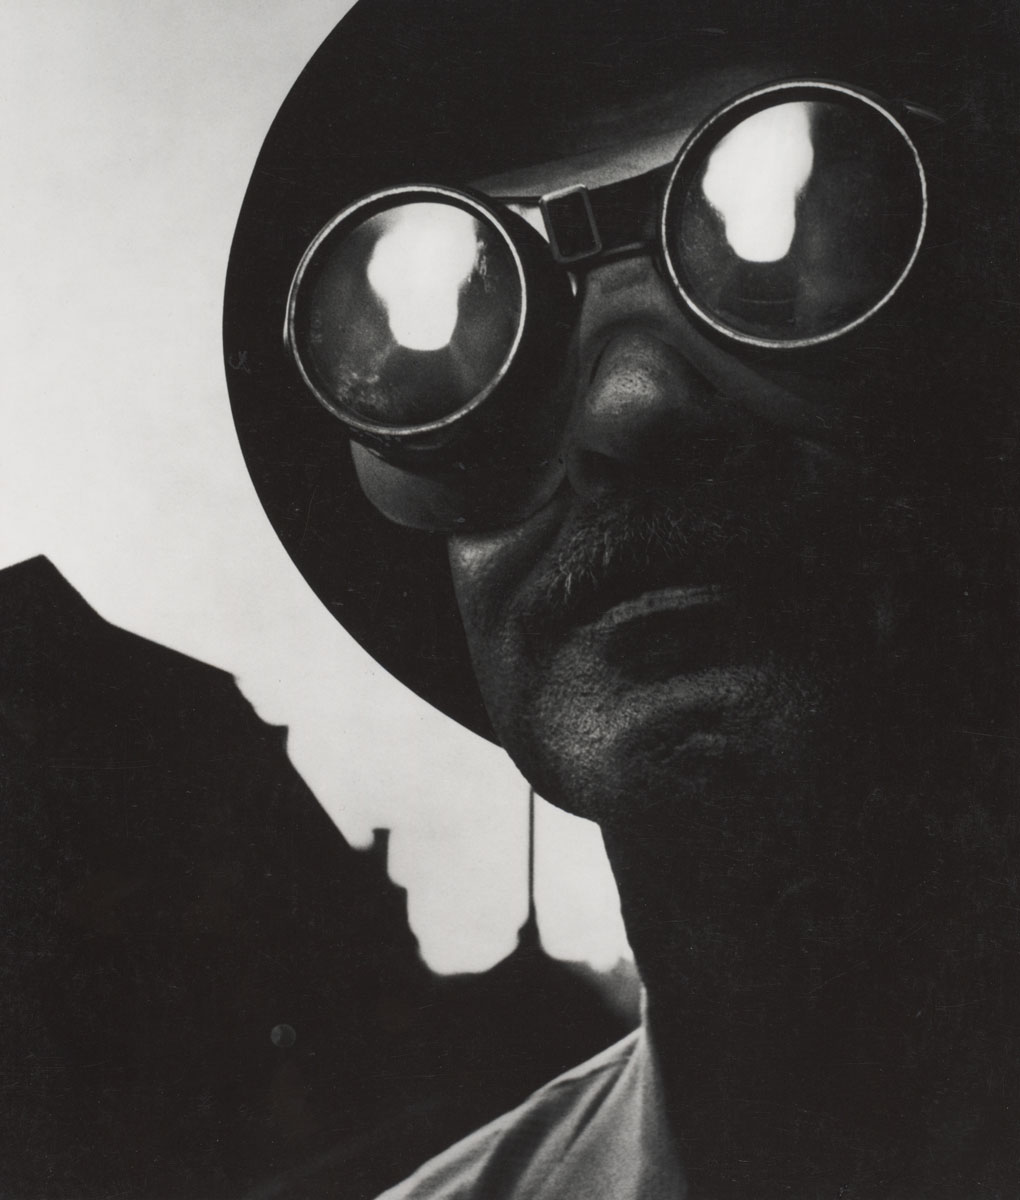 W. Eugene Smith, Steelworker with Goggles, Pittsburgh, 1955, ©The Heirs of W. Eugene Smith